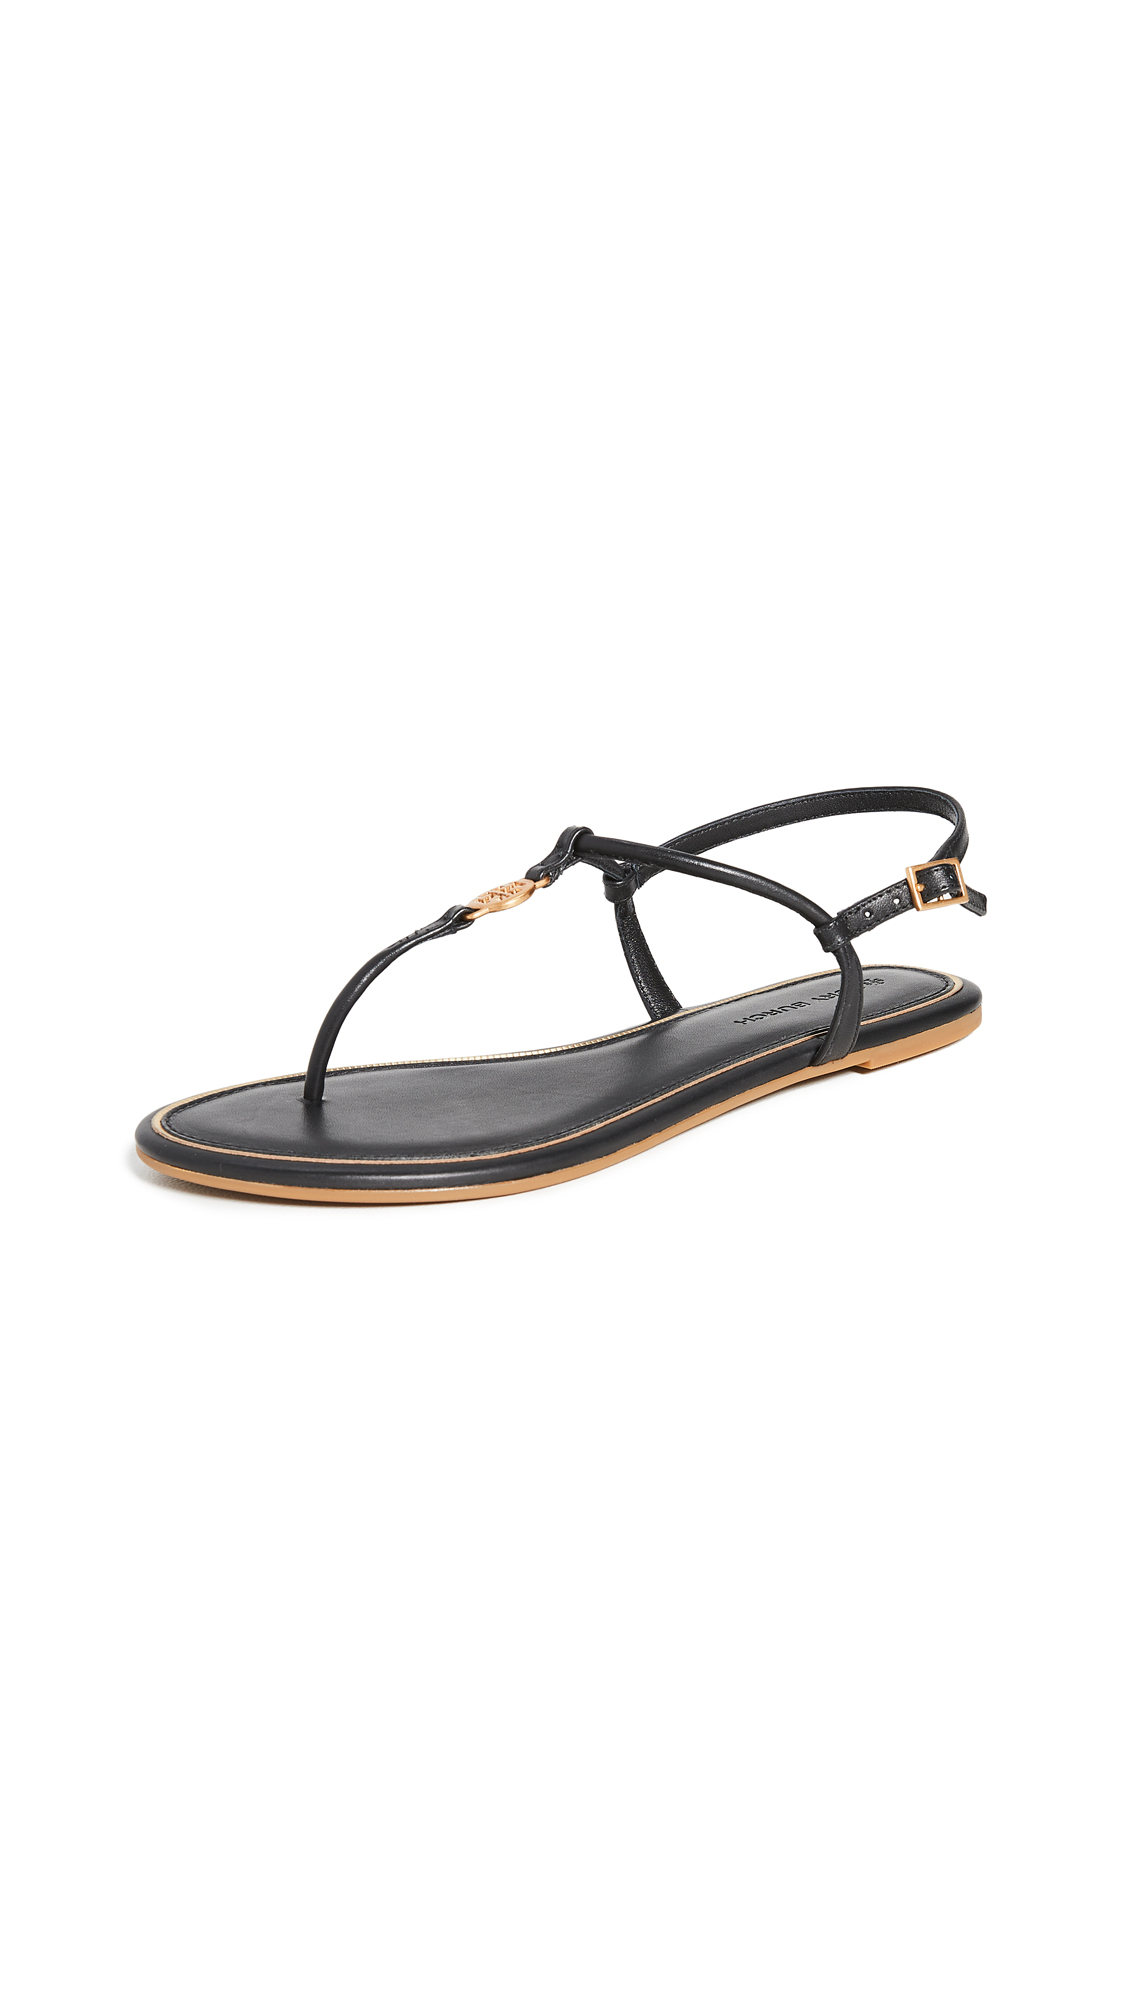 Buy Tory Burch Emmy Flat Sandals online, shop Tory Burch